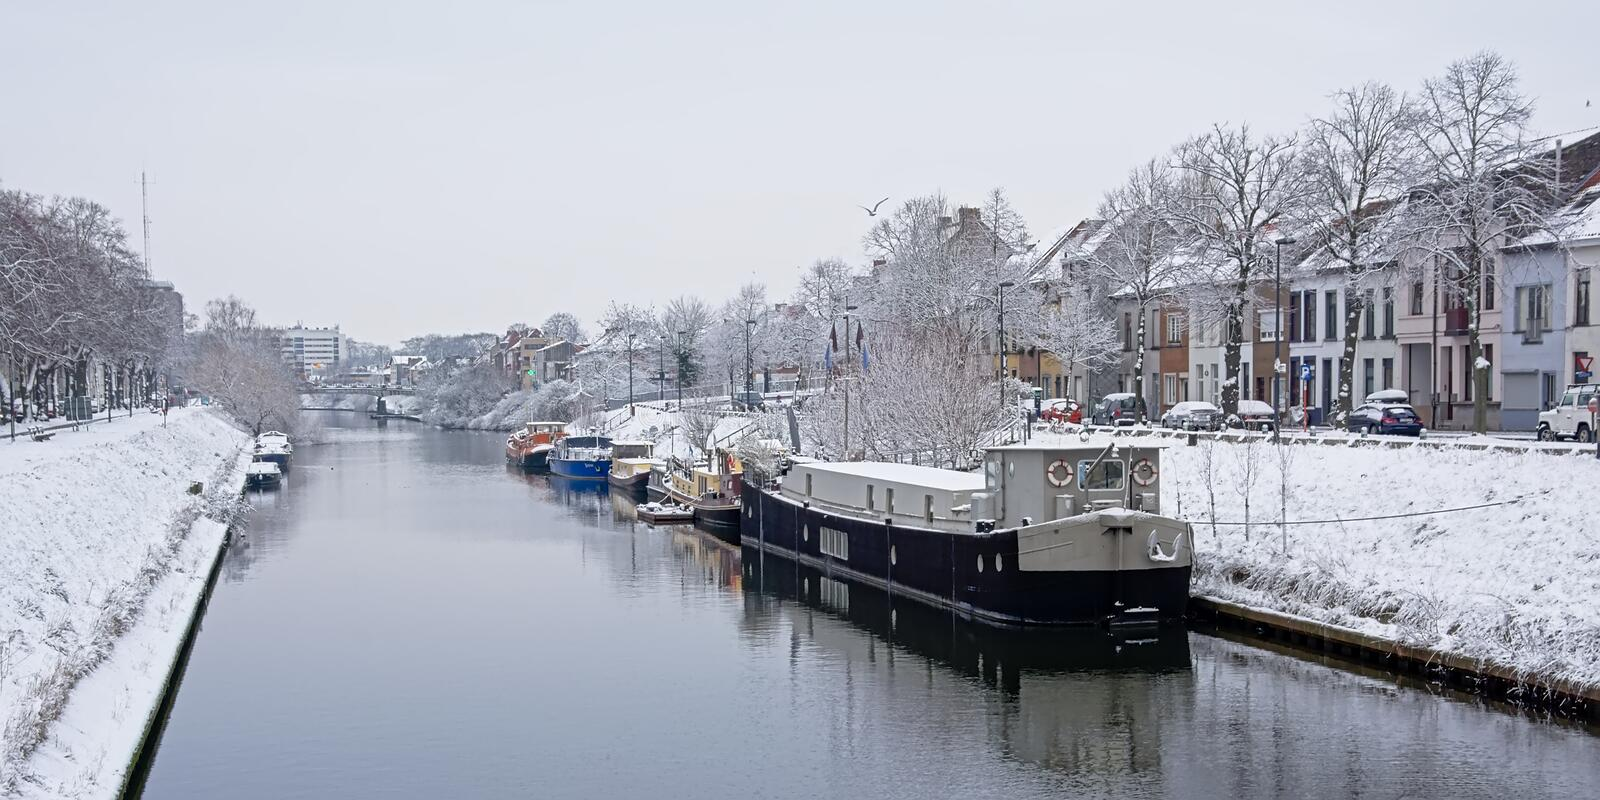 Canal in the city of Ghent with living boats on a winter day with snow stock image